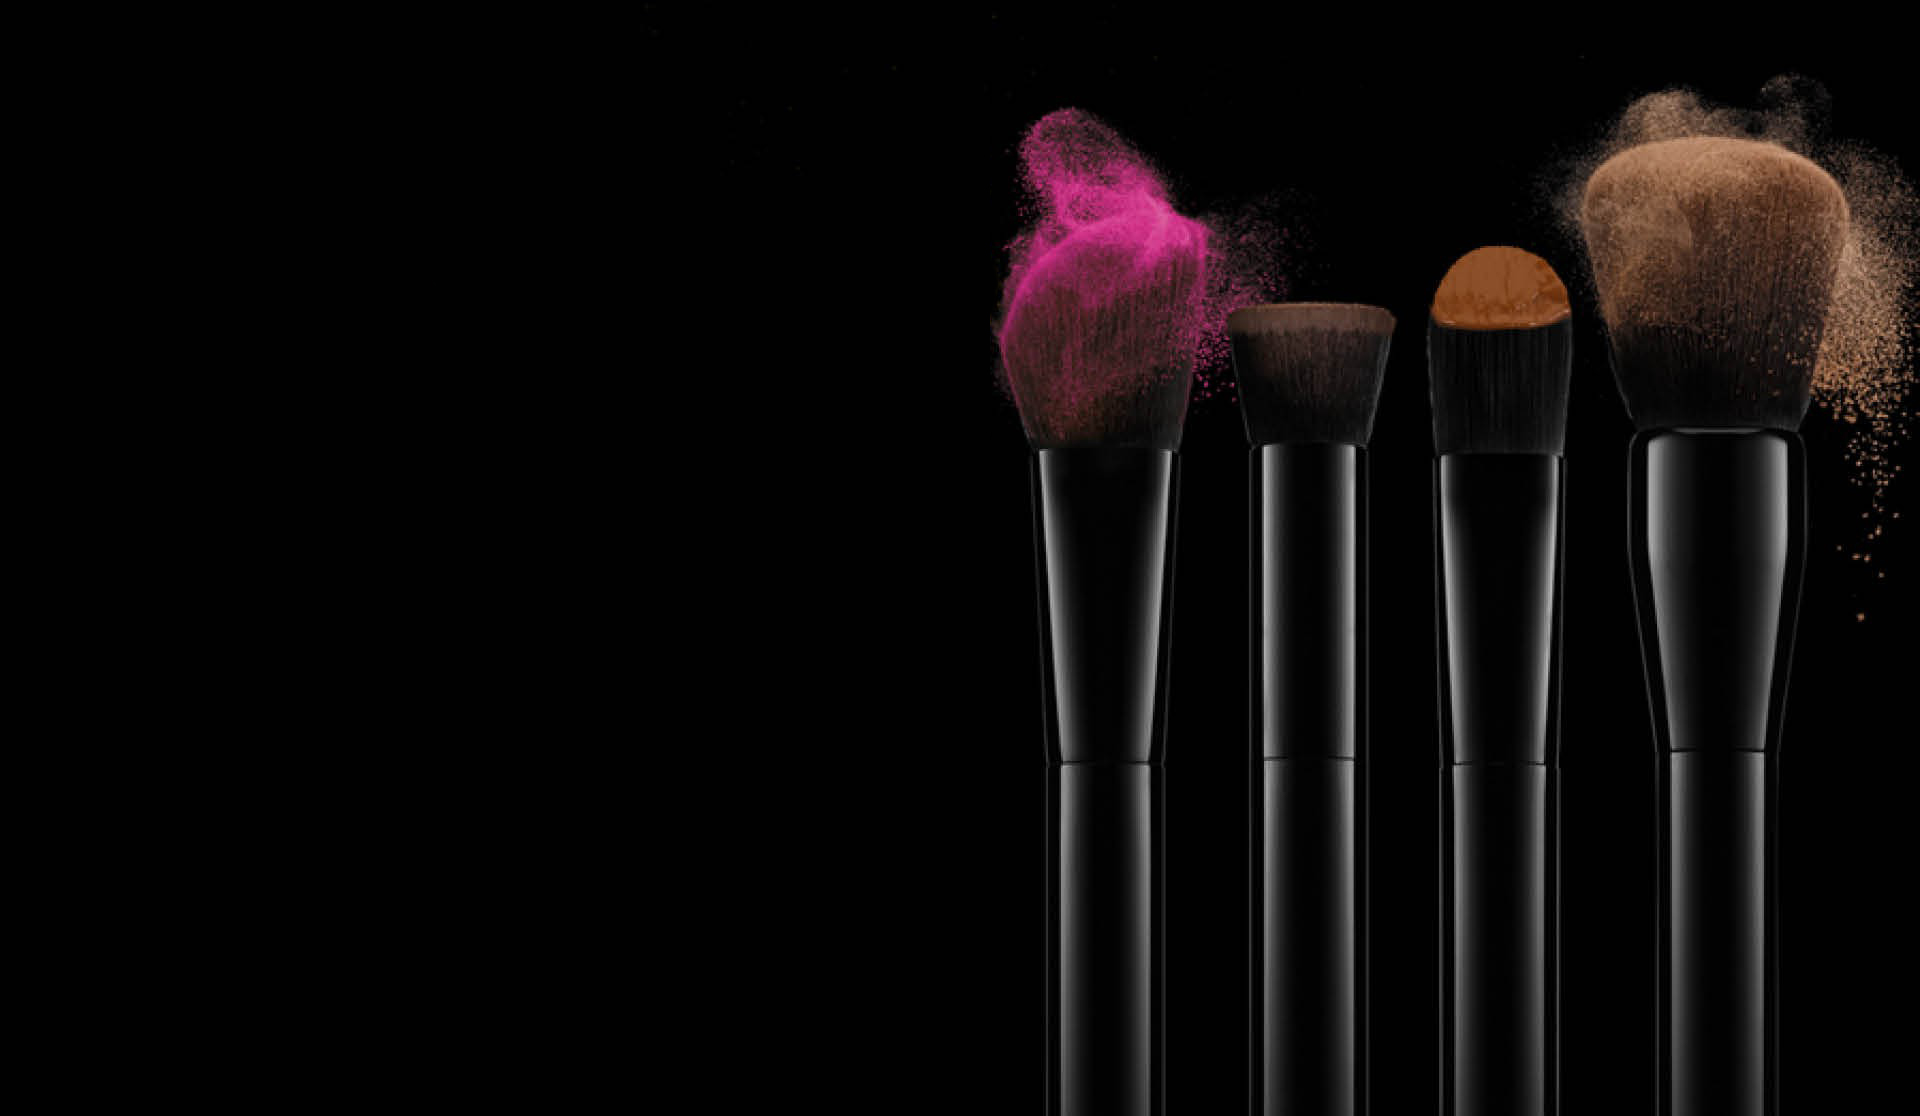 New 3d Abstract Wallpapers Brushes With Coloured Make Up On A Dark Background